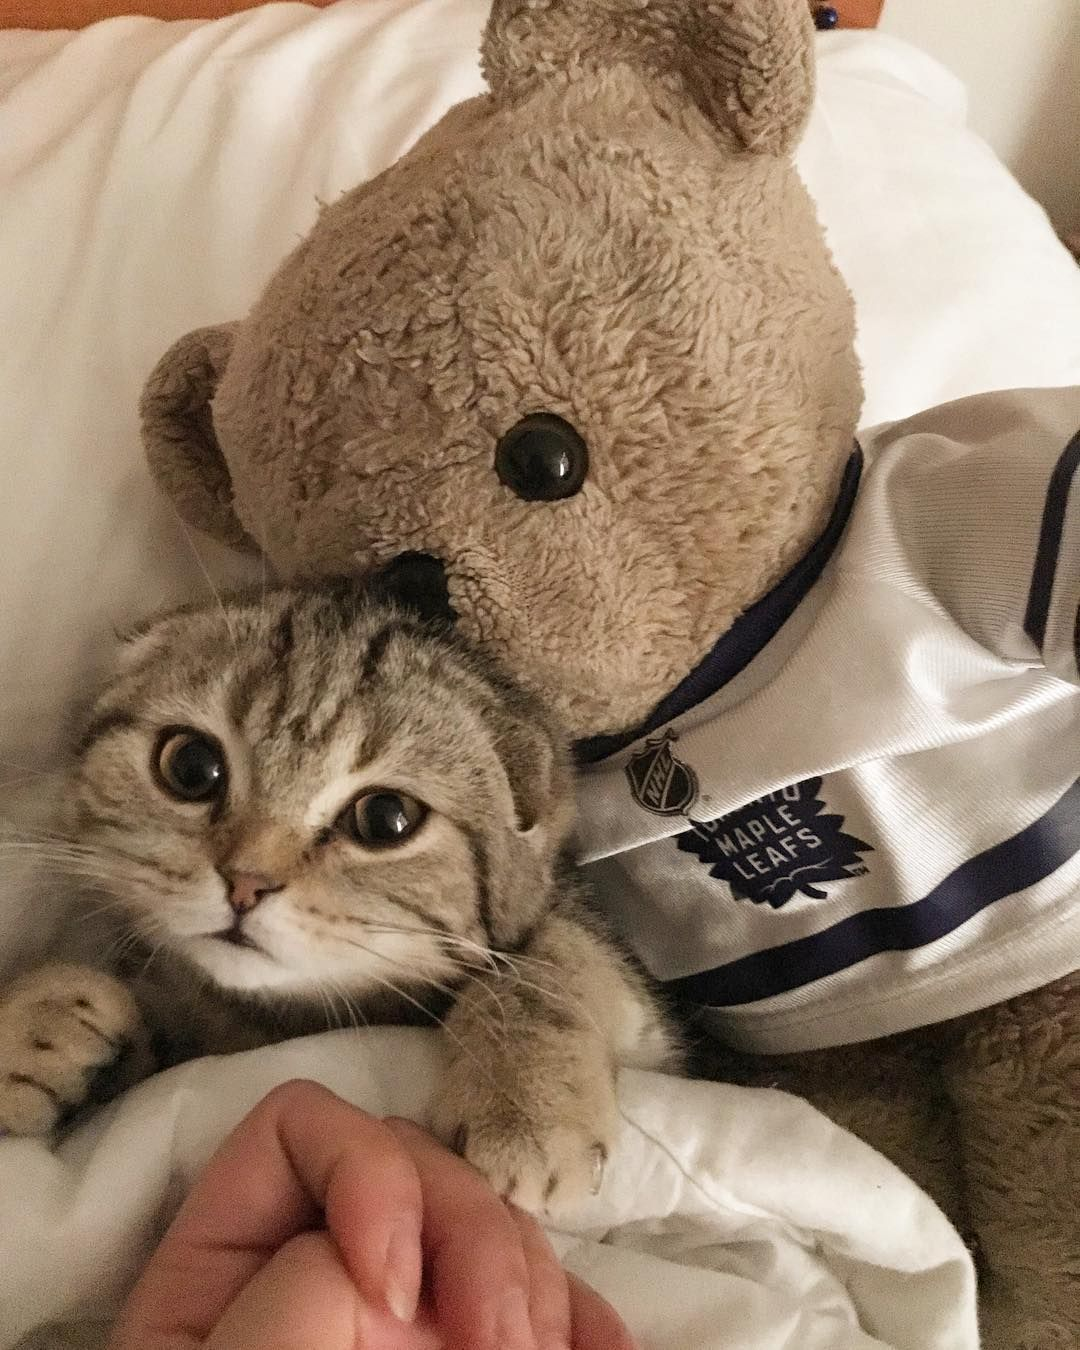 Bed Time Cuddles With My Big Brother Ted Ilovescottishfold Scottishfoldkitten Scottishfolddaily Scottishfoldcats Scott In 2020 Cat Scottish Fold Cuddling Bedtime